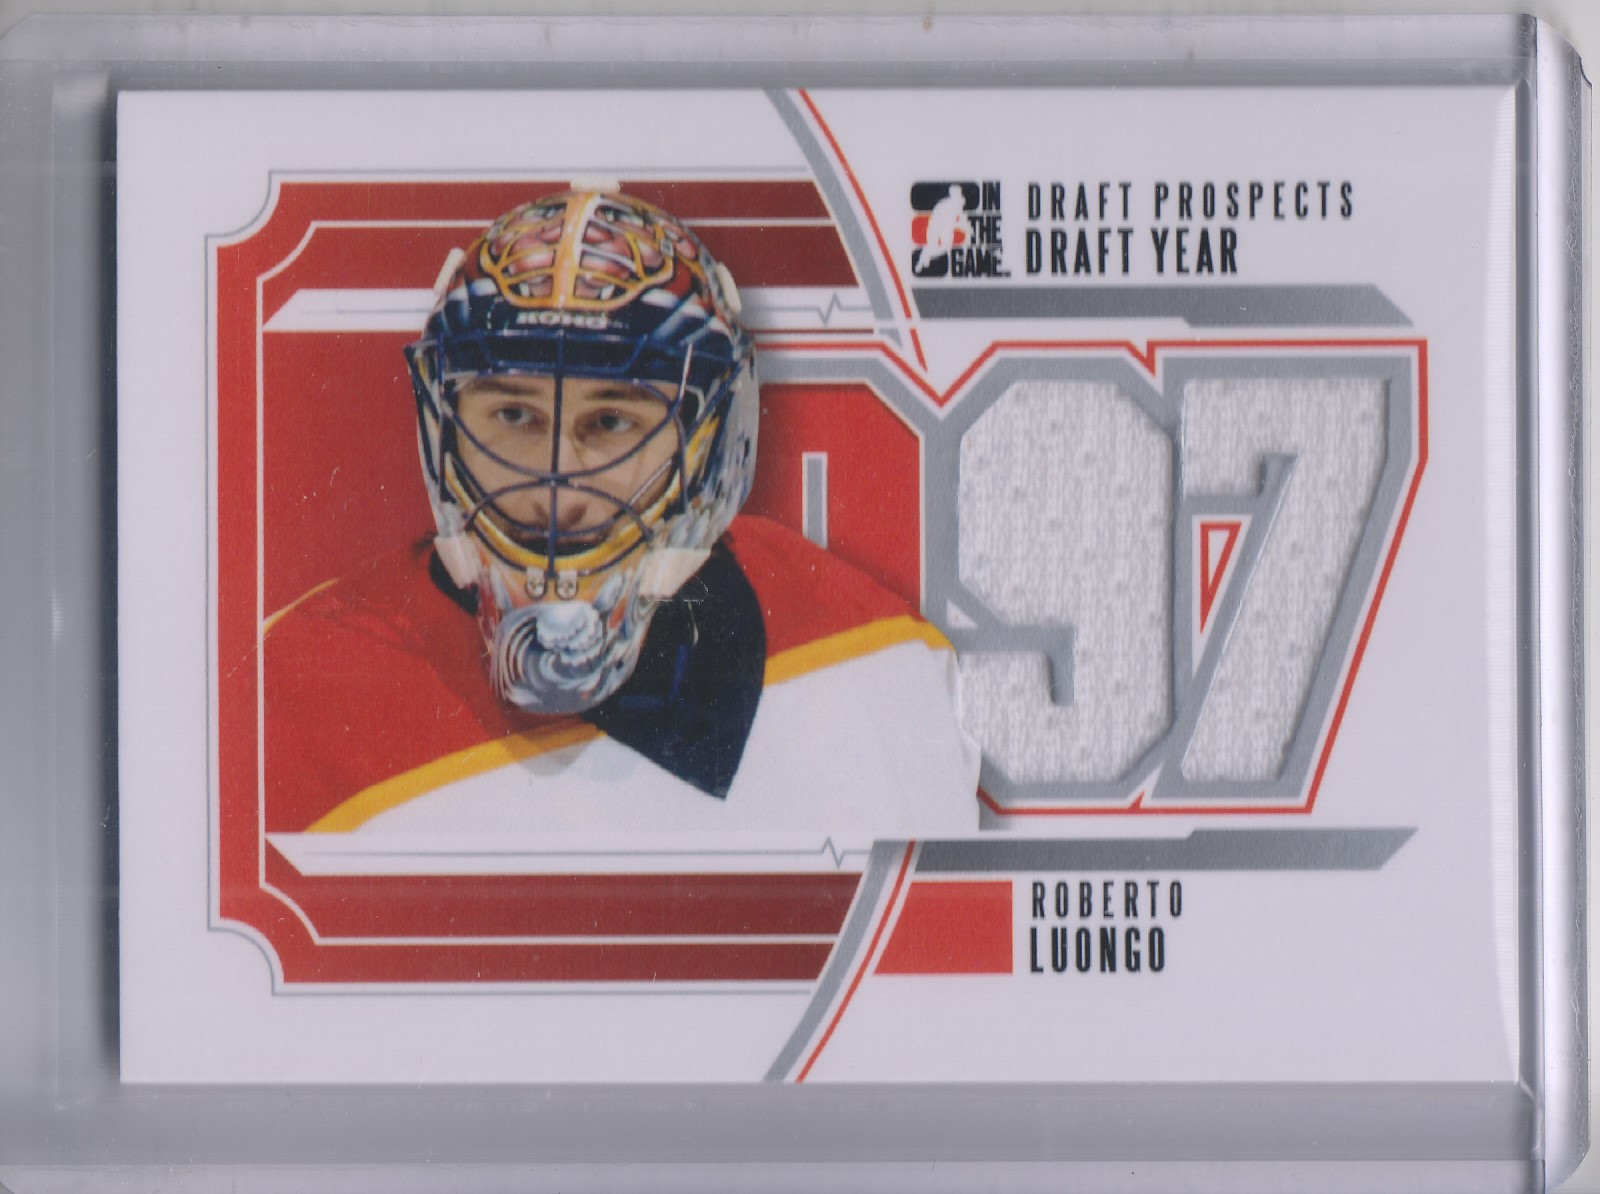 2012-13 ITG Draft Prospects Draft Year Jerseys #DY24 Roberto Luongo